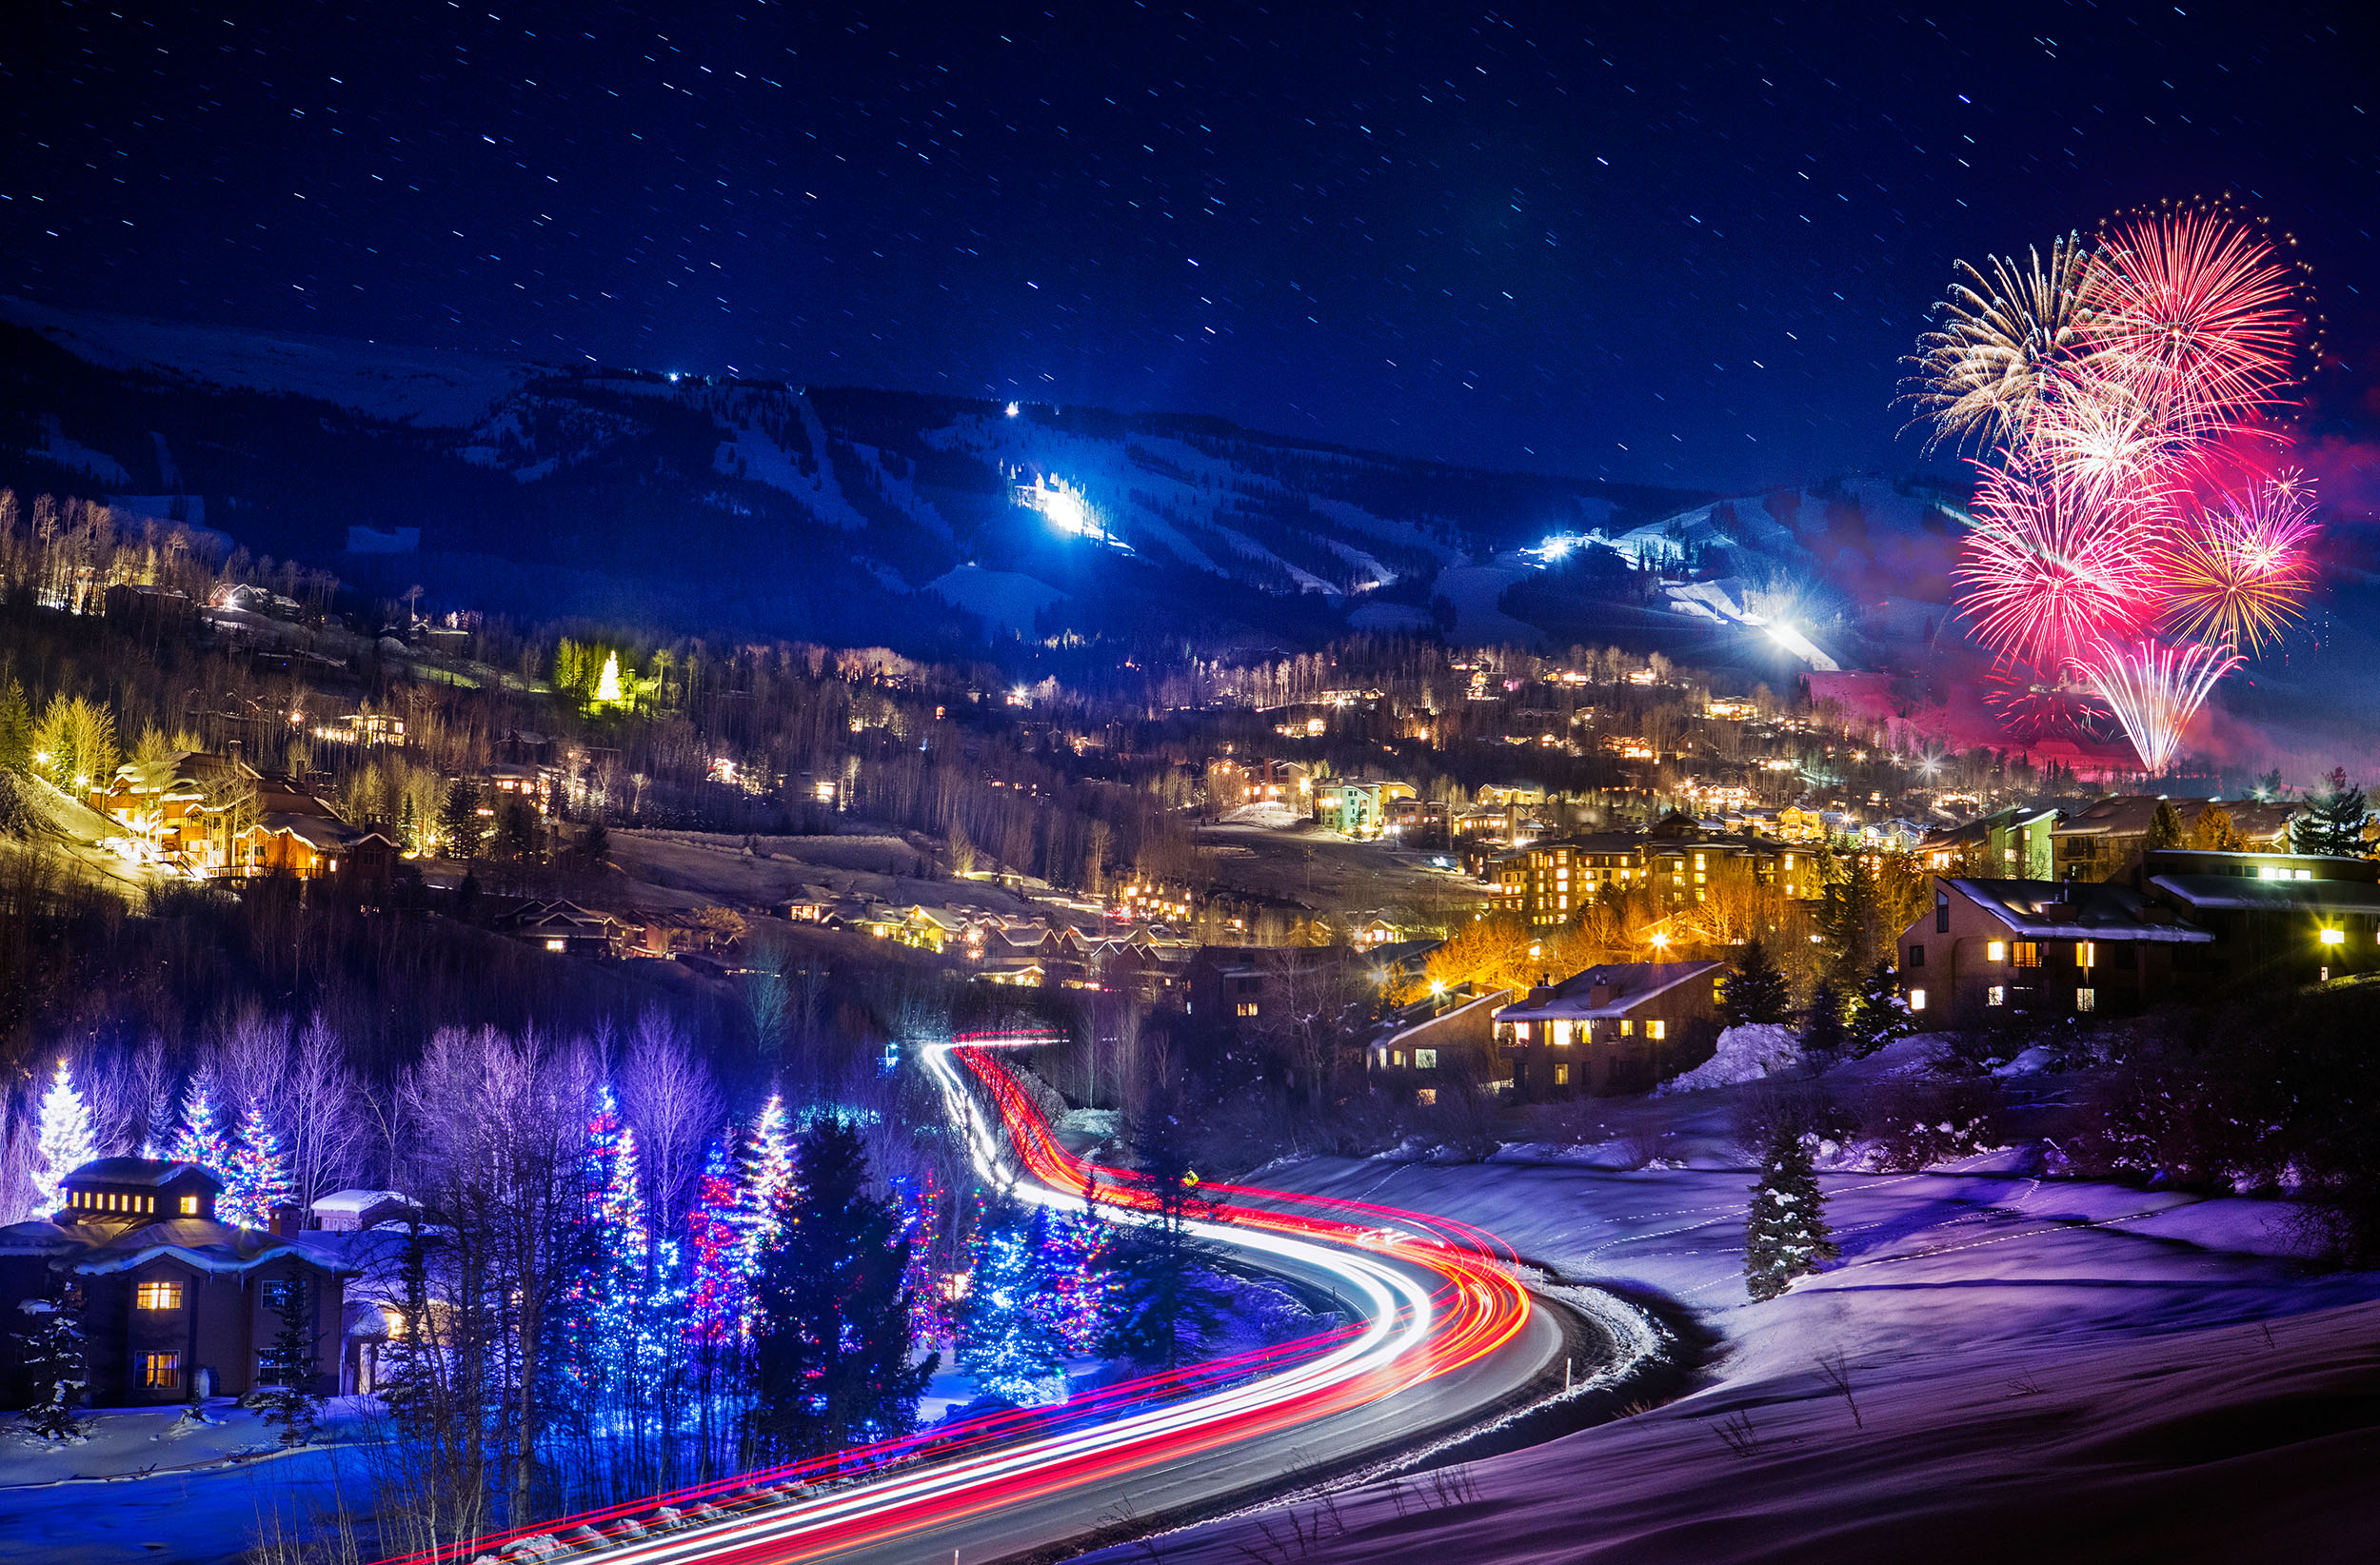 Snowmass Village Fireworks by Jeremy Swanson